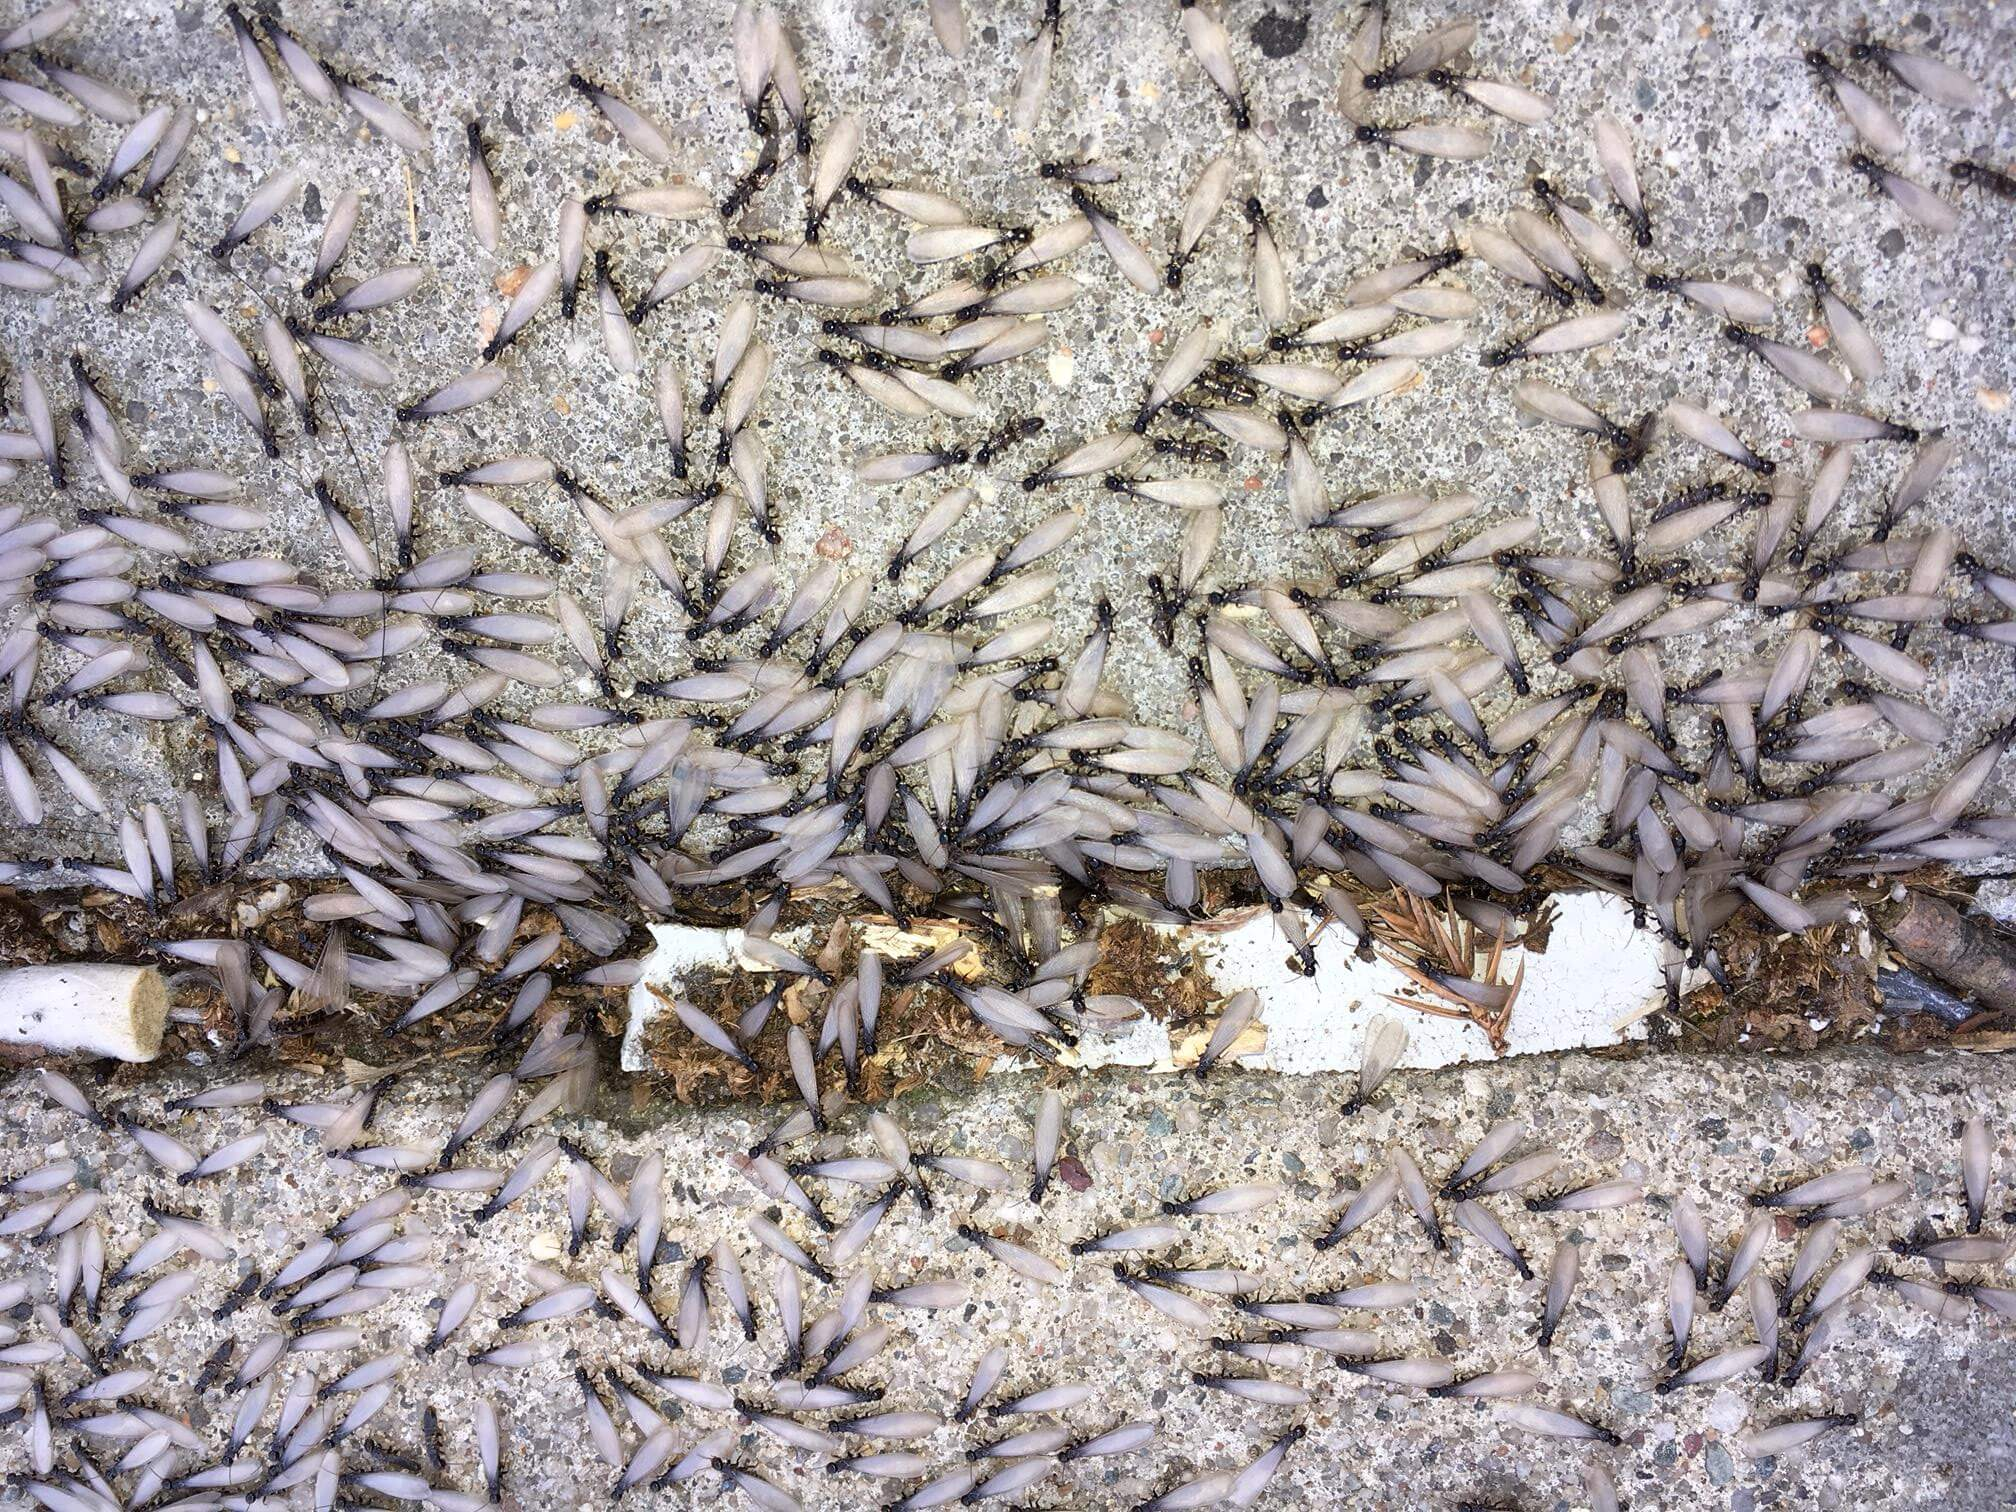 Flying Ants Vs Winged Termites Easy Ways To Tell The Difference